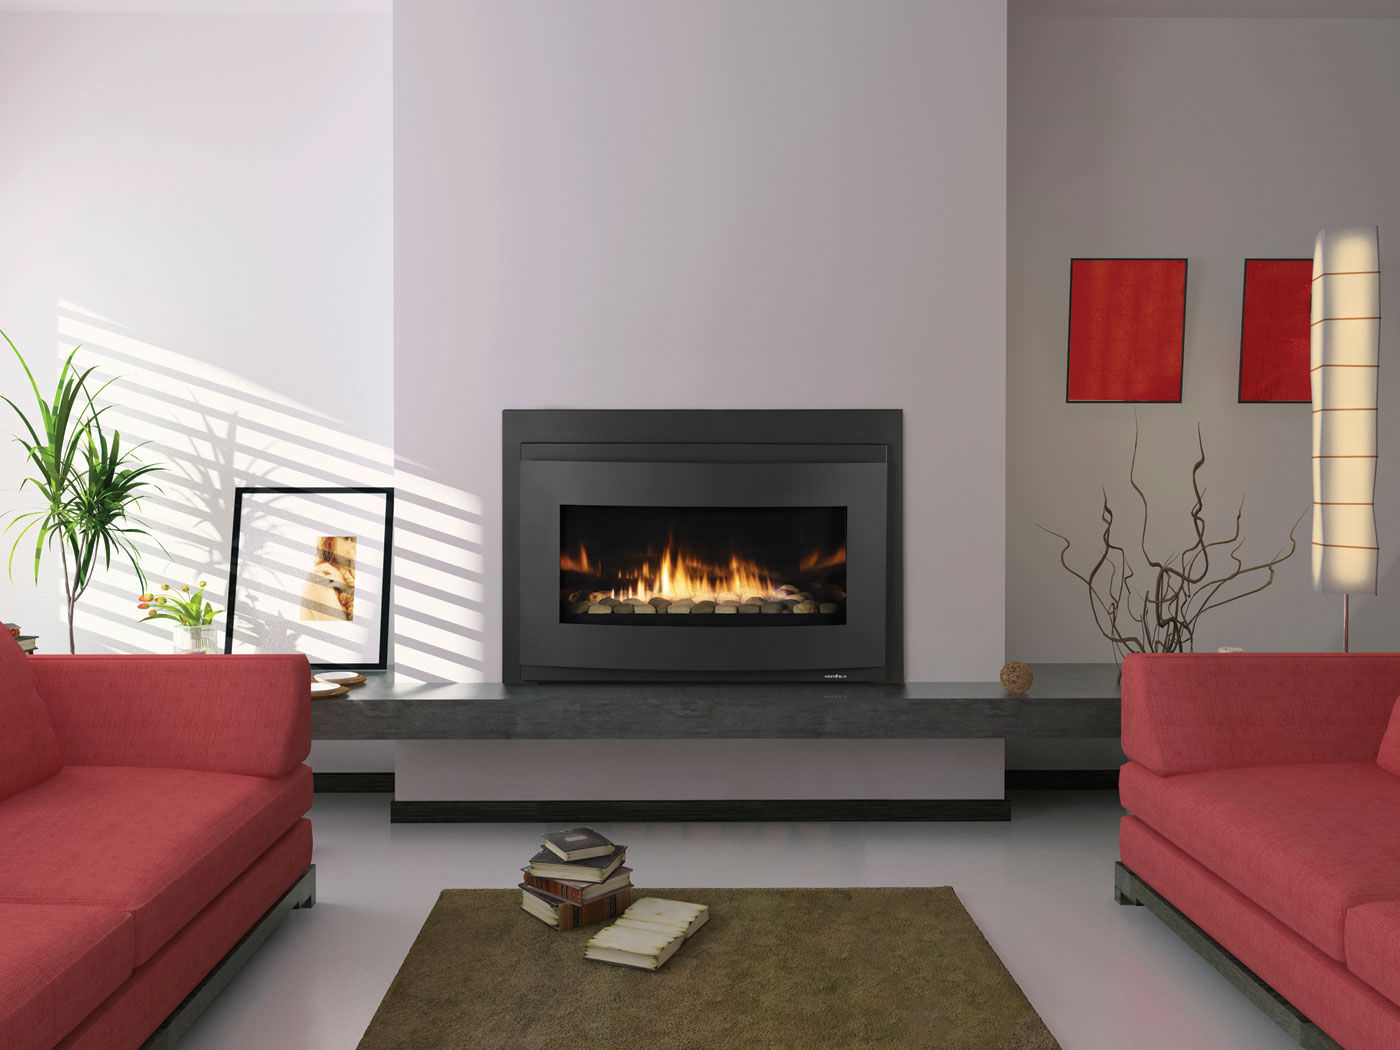 Gas fireplace insert / remote-controlled - COSMO - HEAT & GLO - Videos